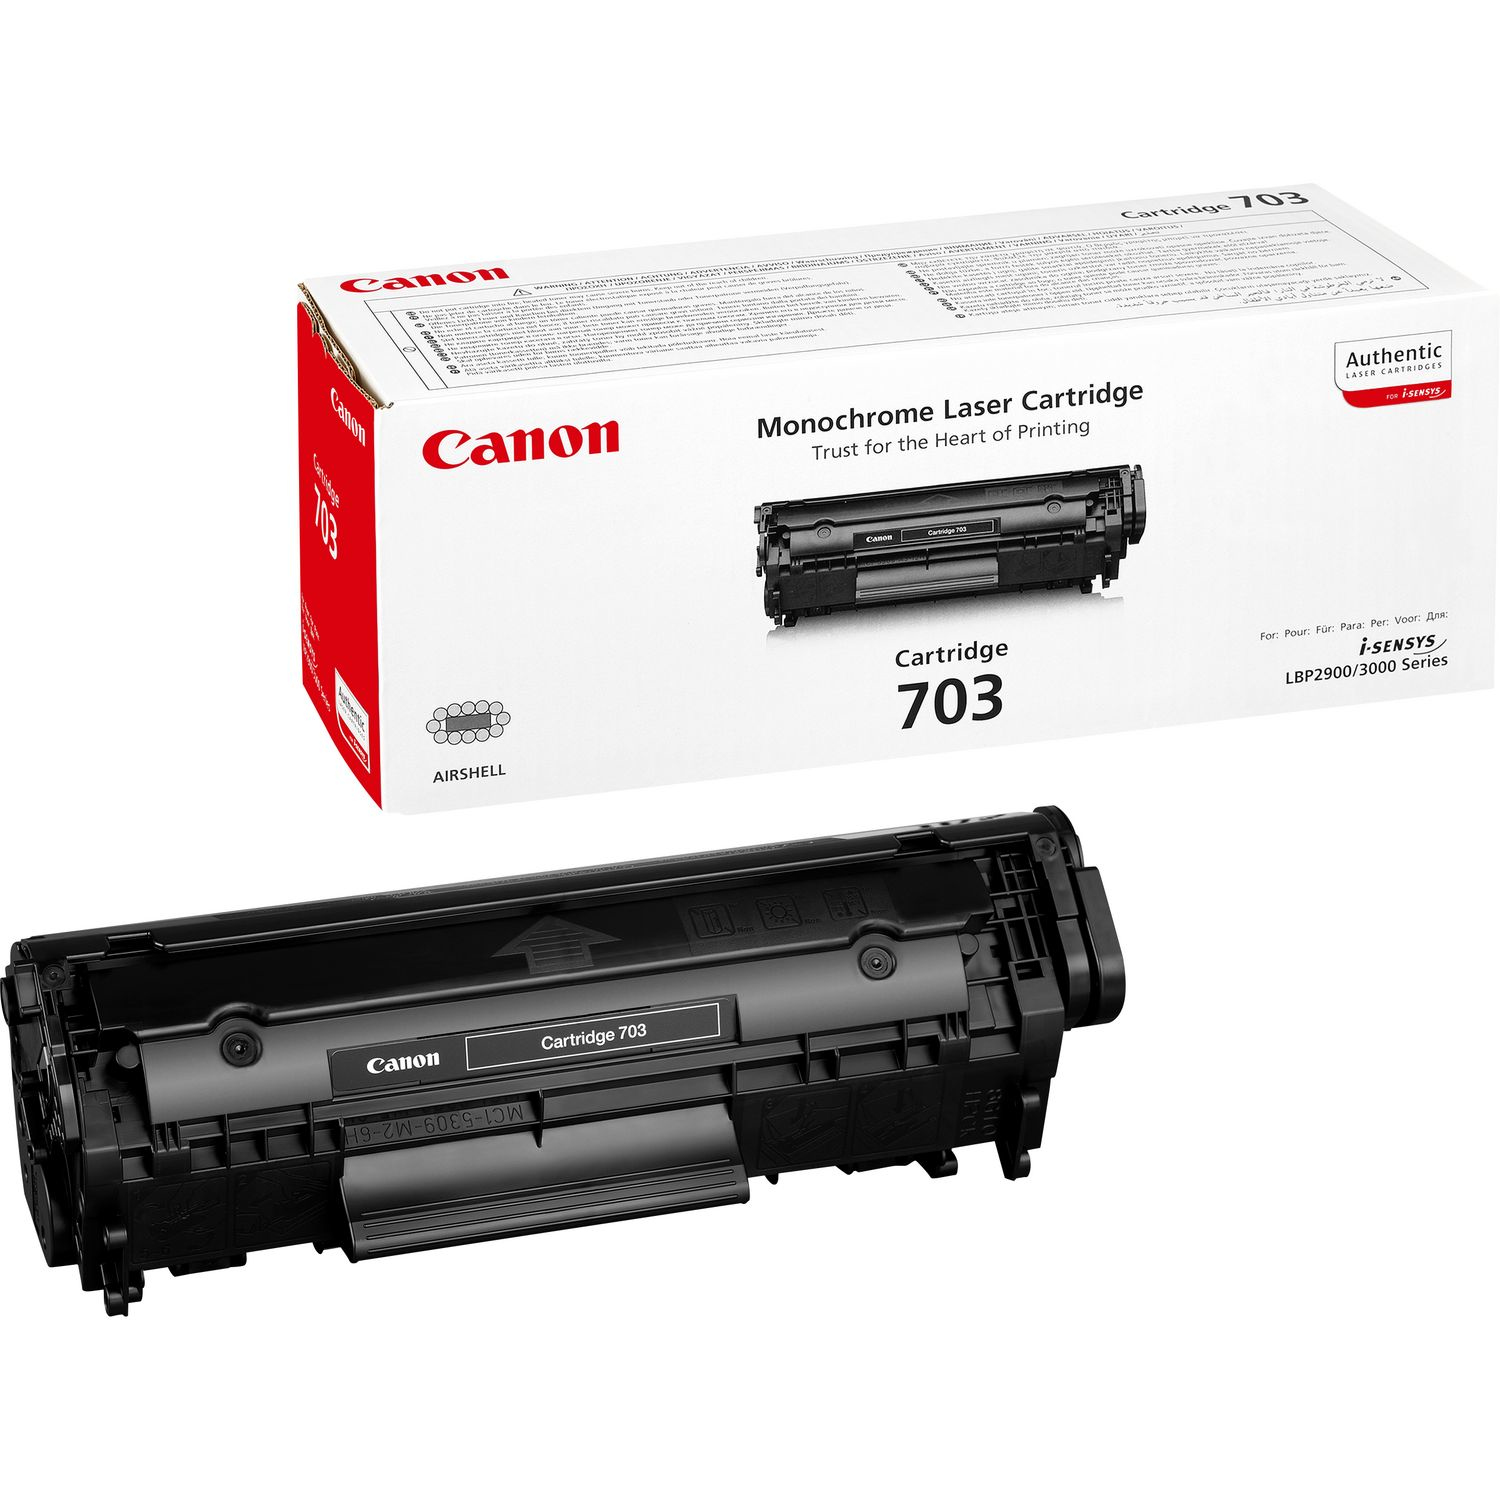 Remanufactured Canon 7616A005AA Toner Cartridge Black 7616A005AA - rem01